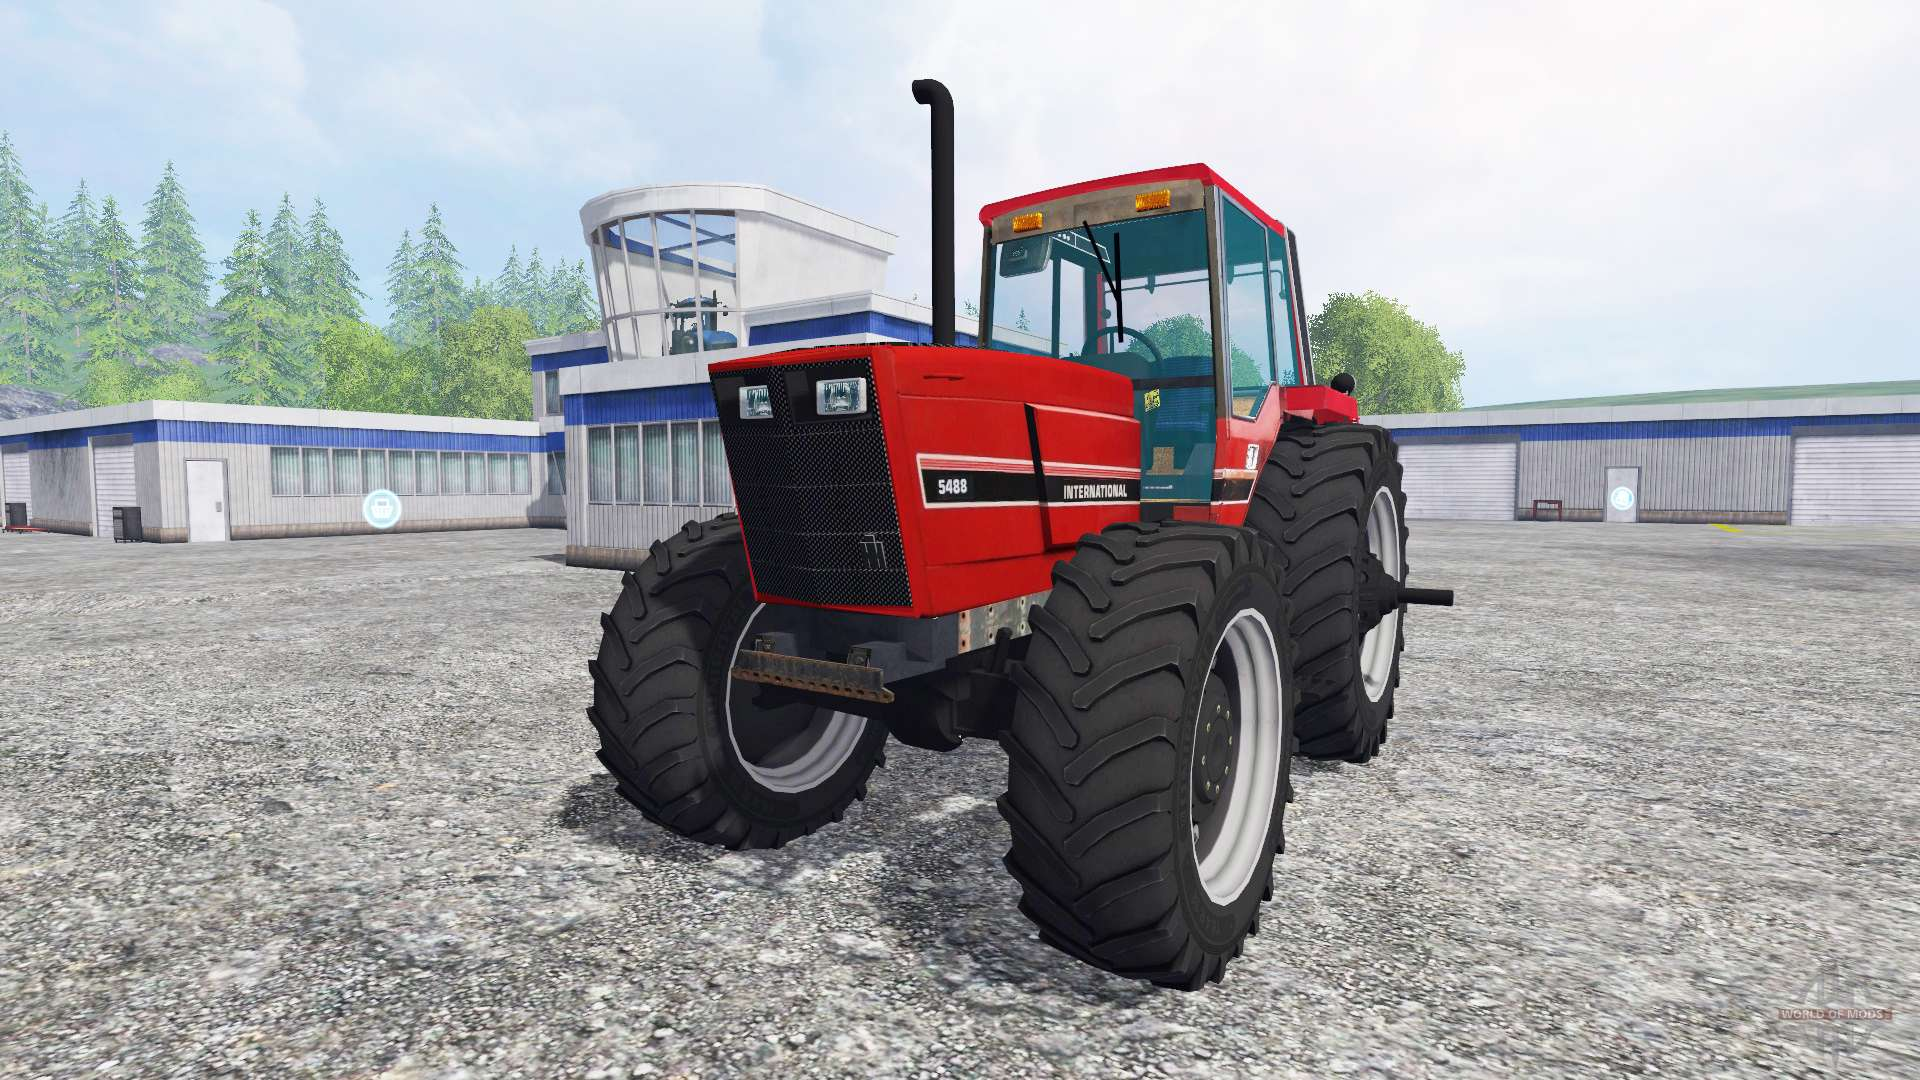 Case Ih 5488 For Farming Simulator 2015